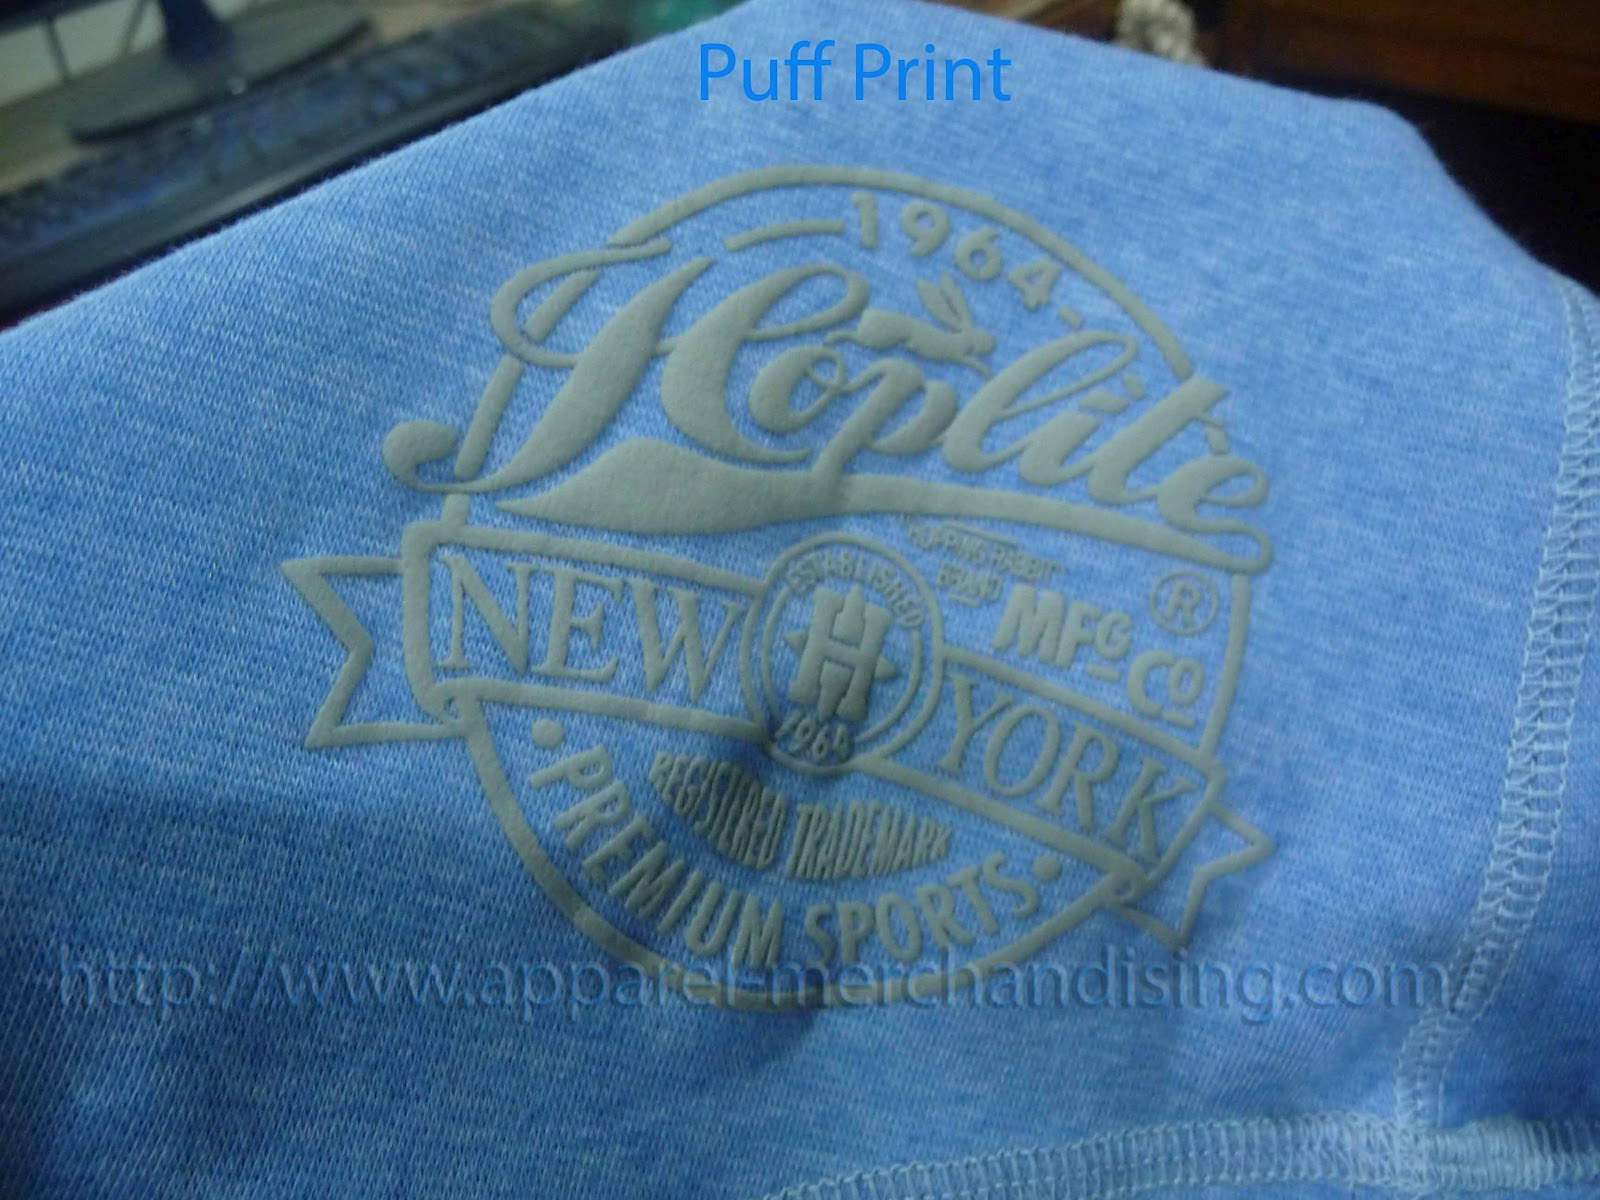 Puff print learnmerchandising for 4 color process t shirt printing